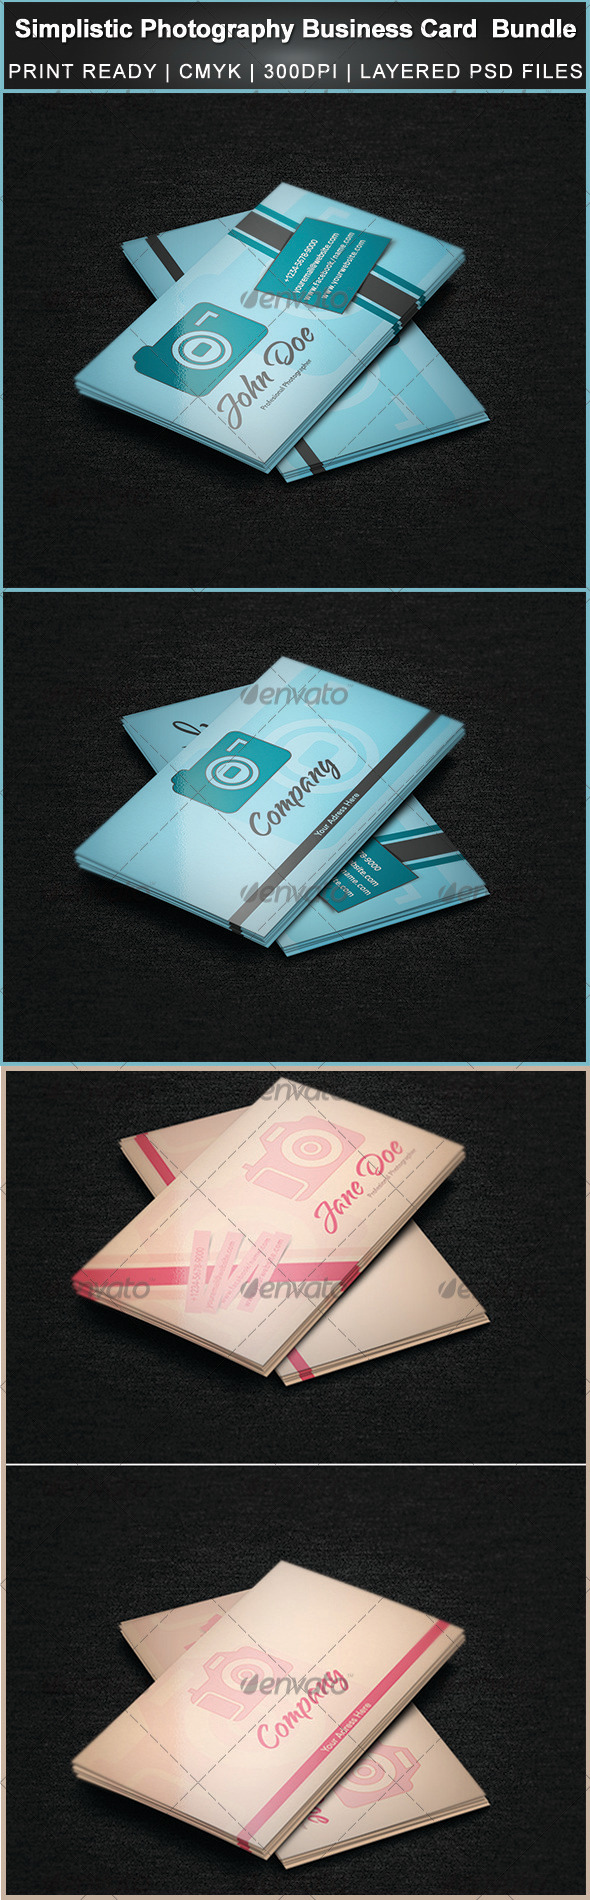 GraphicRiver Simplistic Photography Business Card Bundle 3329340